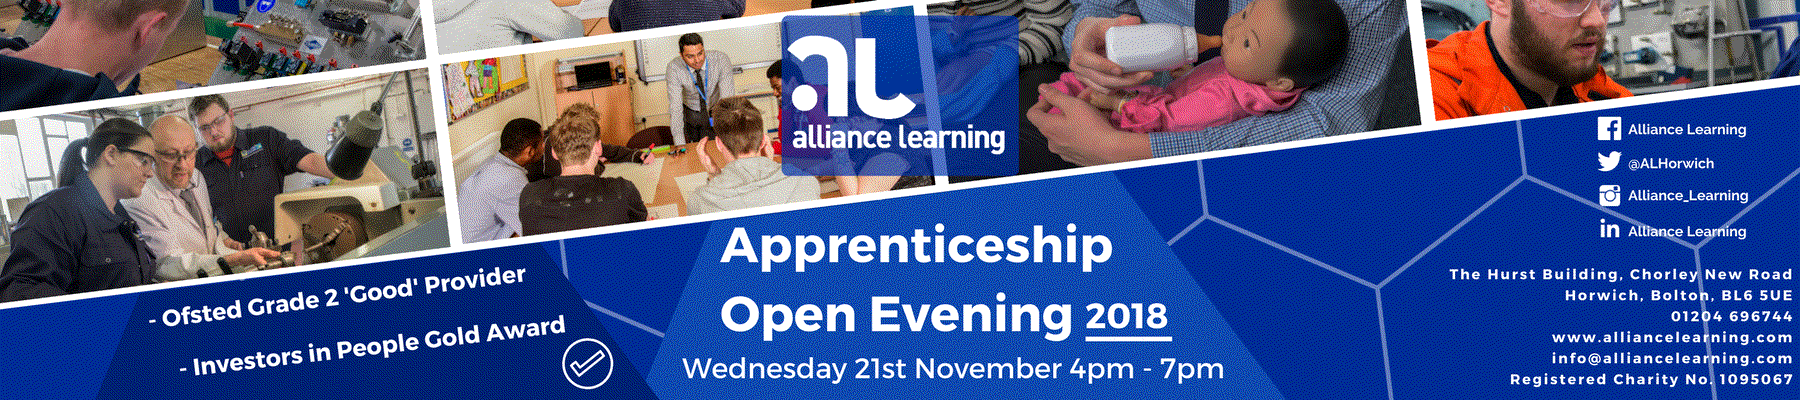 Alliance learning apprenticeships